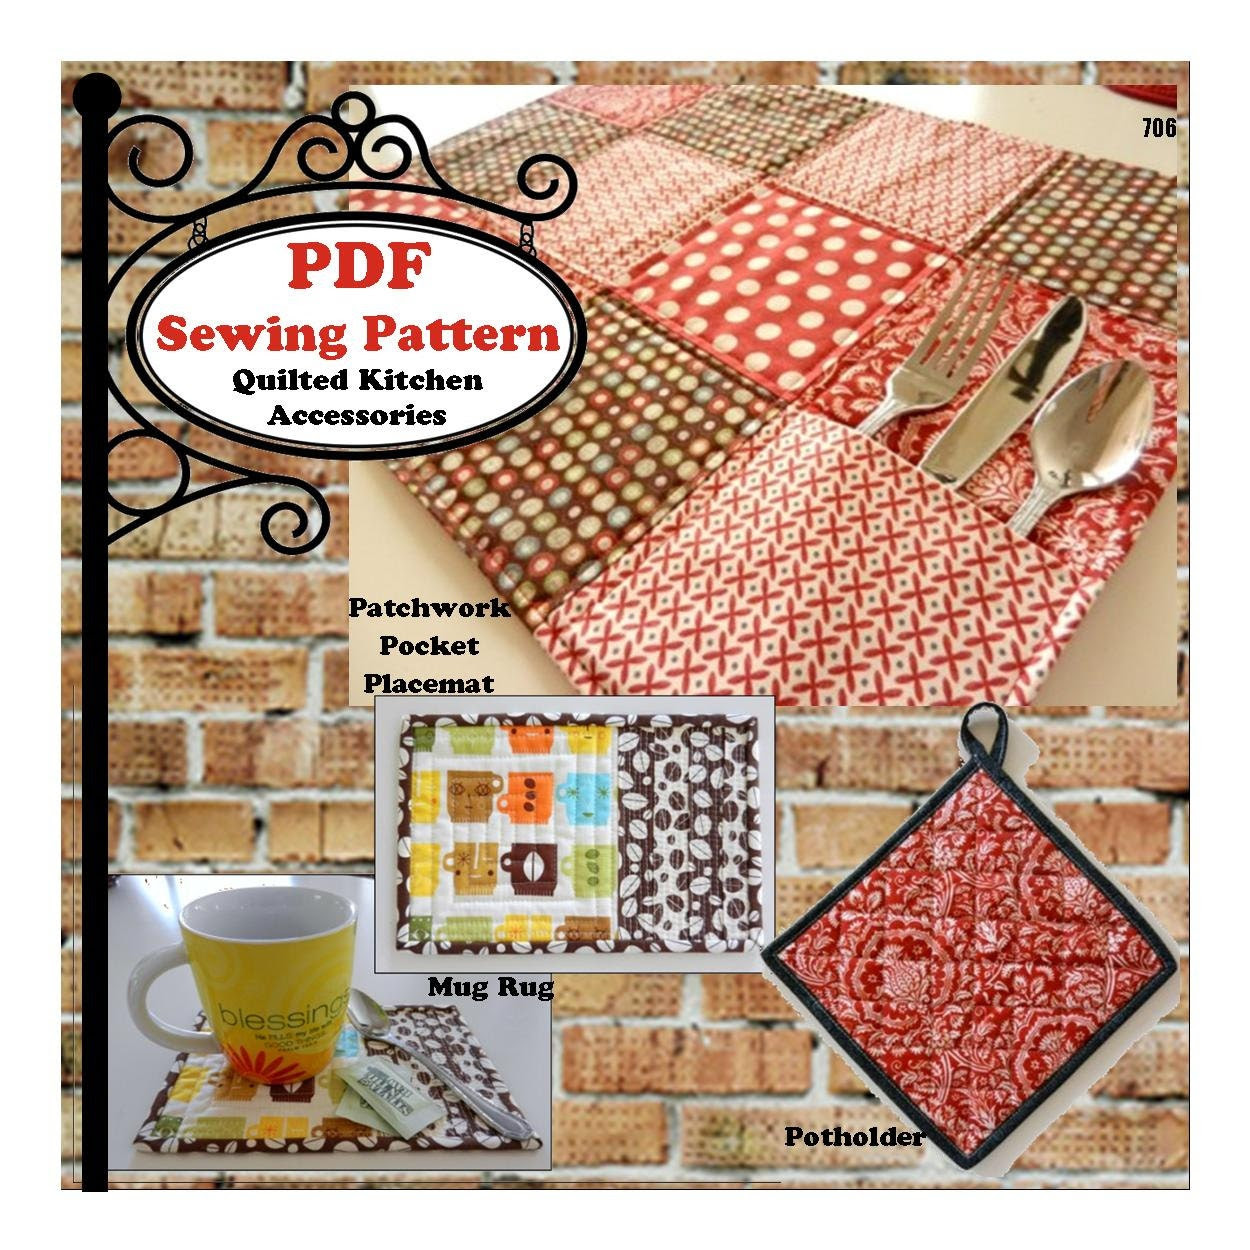 Quilted Kitchen Accessories | Kitchens and Designs